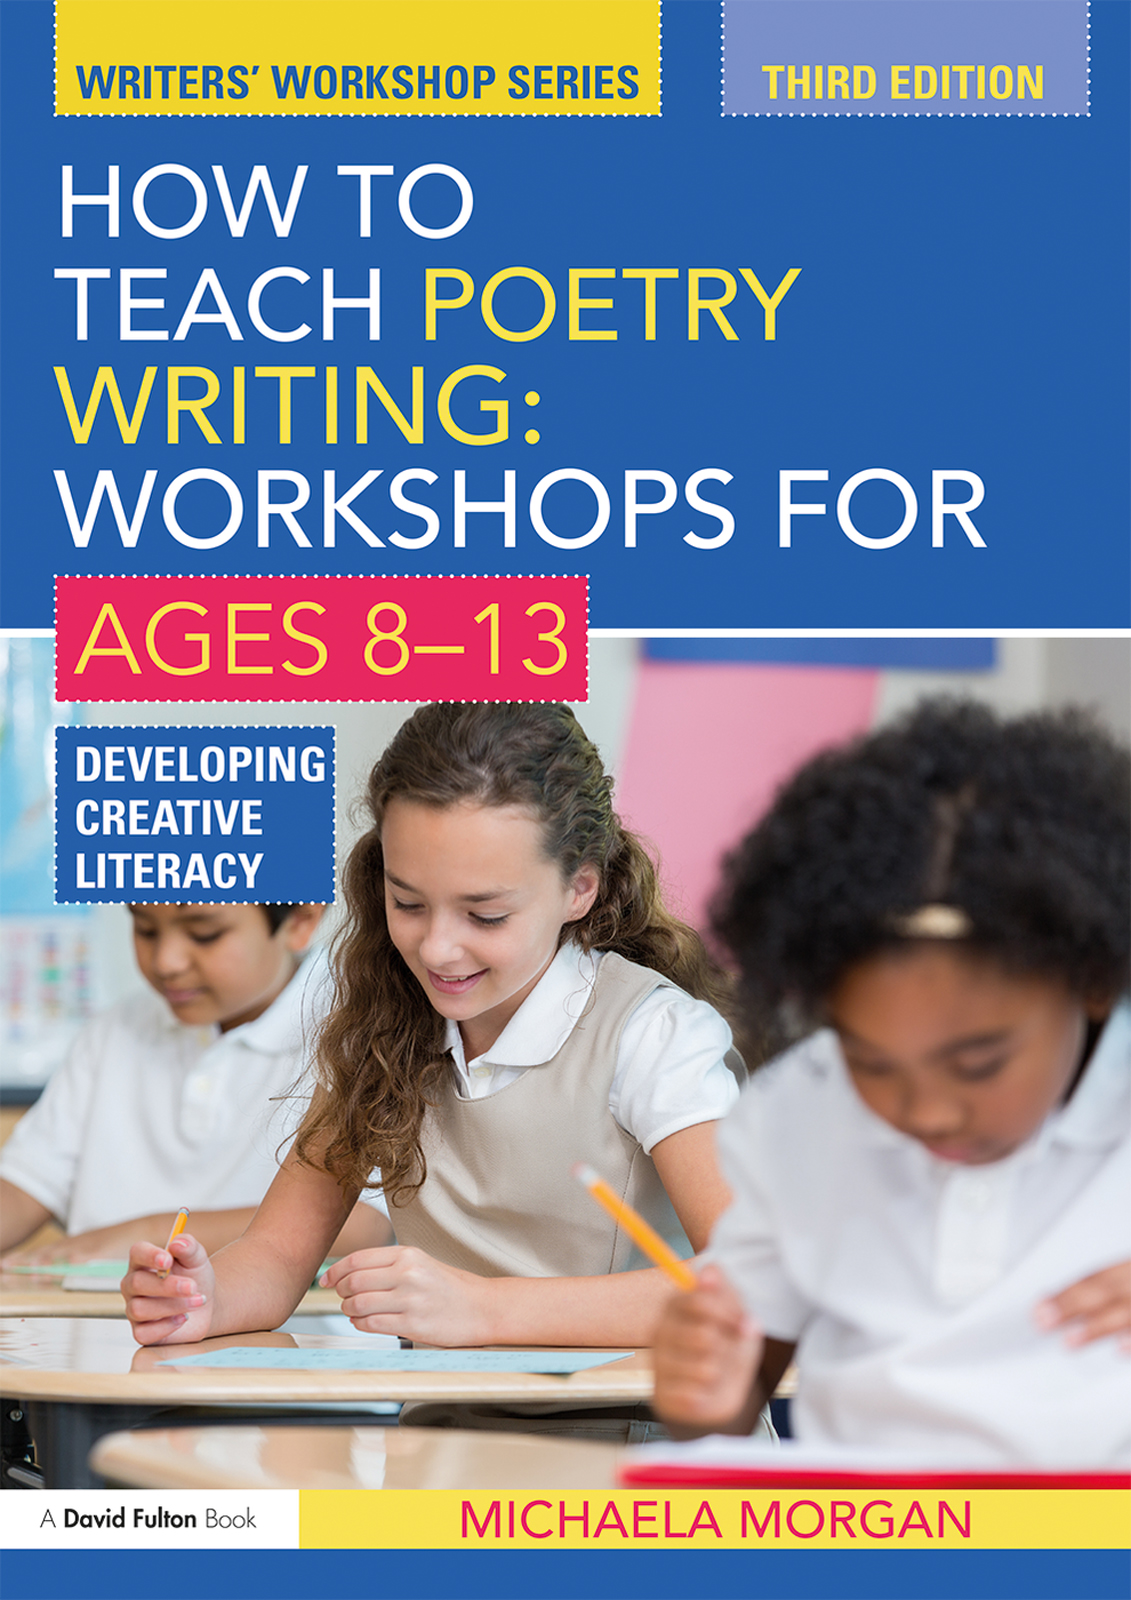 How to Teach Poetry Writing: Workshops for Ages 8-13: Developing Creative Literacy book cover